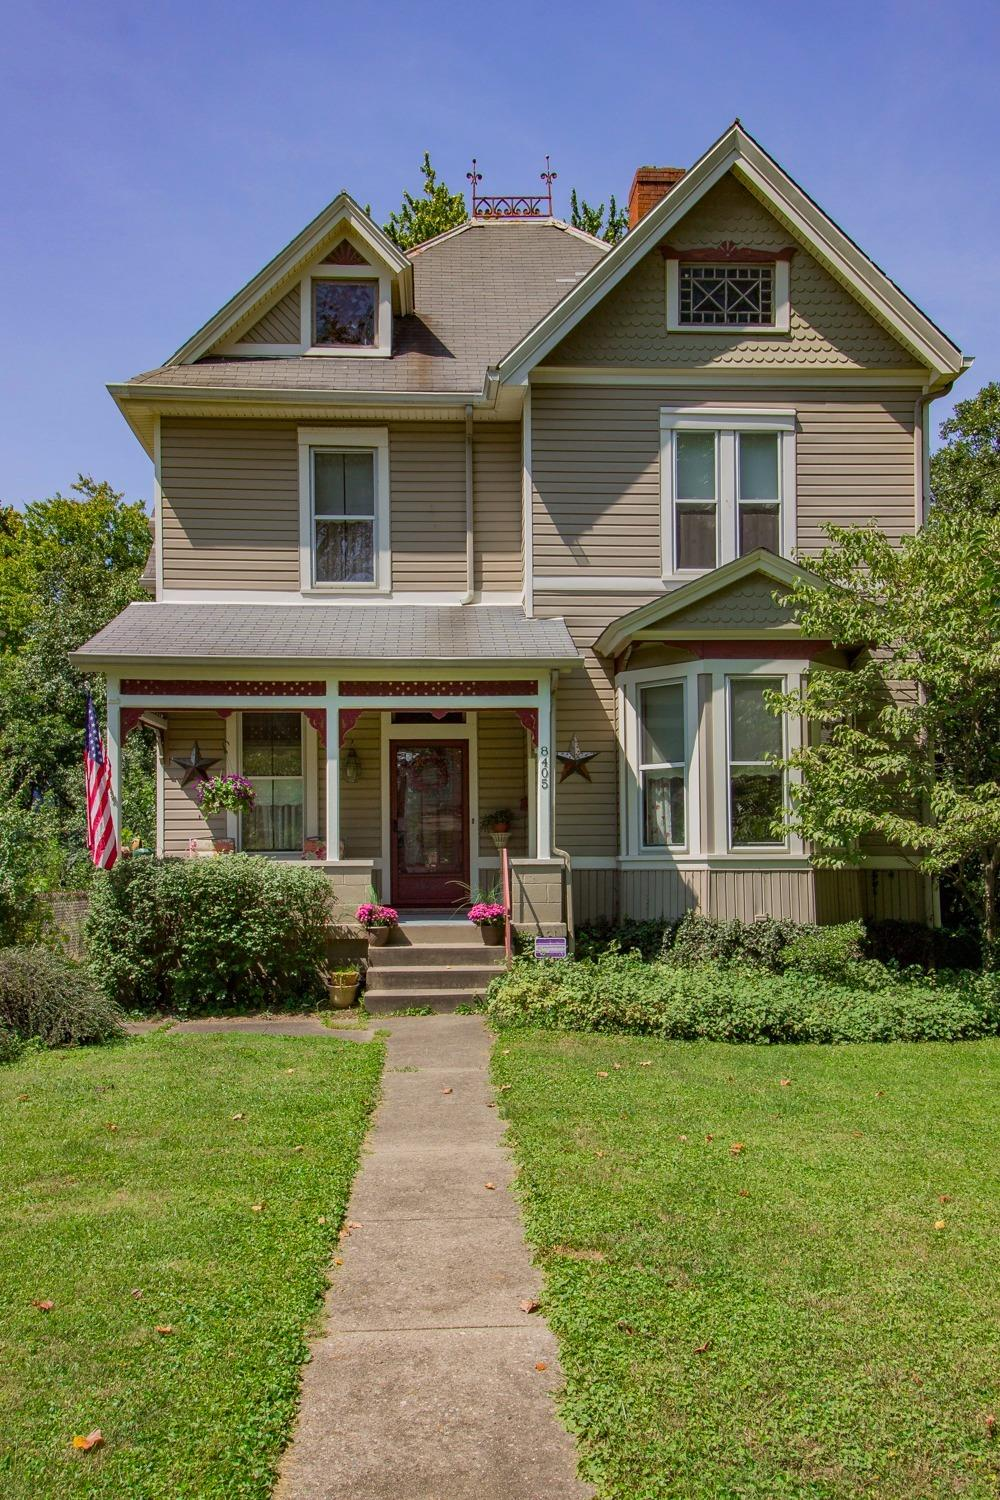 PRICE REDUCED!! Stunning Victorian in great location-only 2 blocks from Wyoming! Features: 9 & 10 ceilings, original HWD flrg, 2 updtd kitchs! Frst flr could be used as bdrm or FR. Perfect setup for mother in law suite- 2nd flr boasts 3 bdrm, bath, and another full bistro style kitch! 3rd flr fnshd rec rm. Pvt fncd in yard & screend porch!